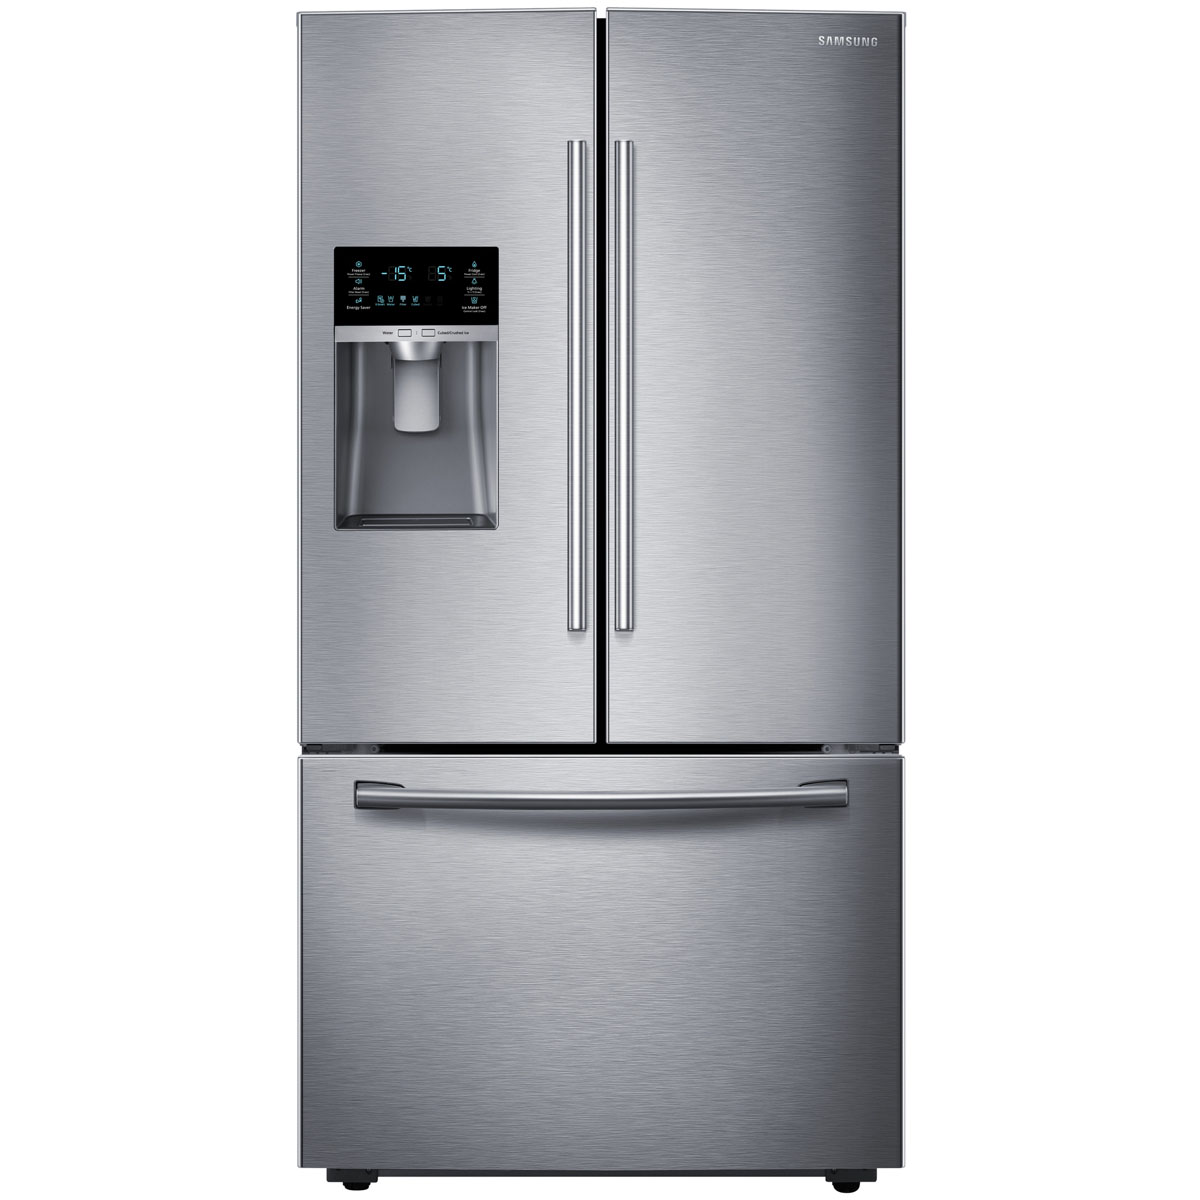 Samsung SRF653CDLS 653L French Door Fridge